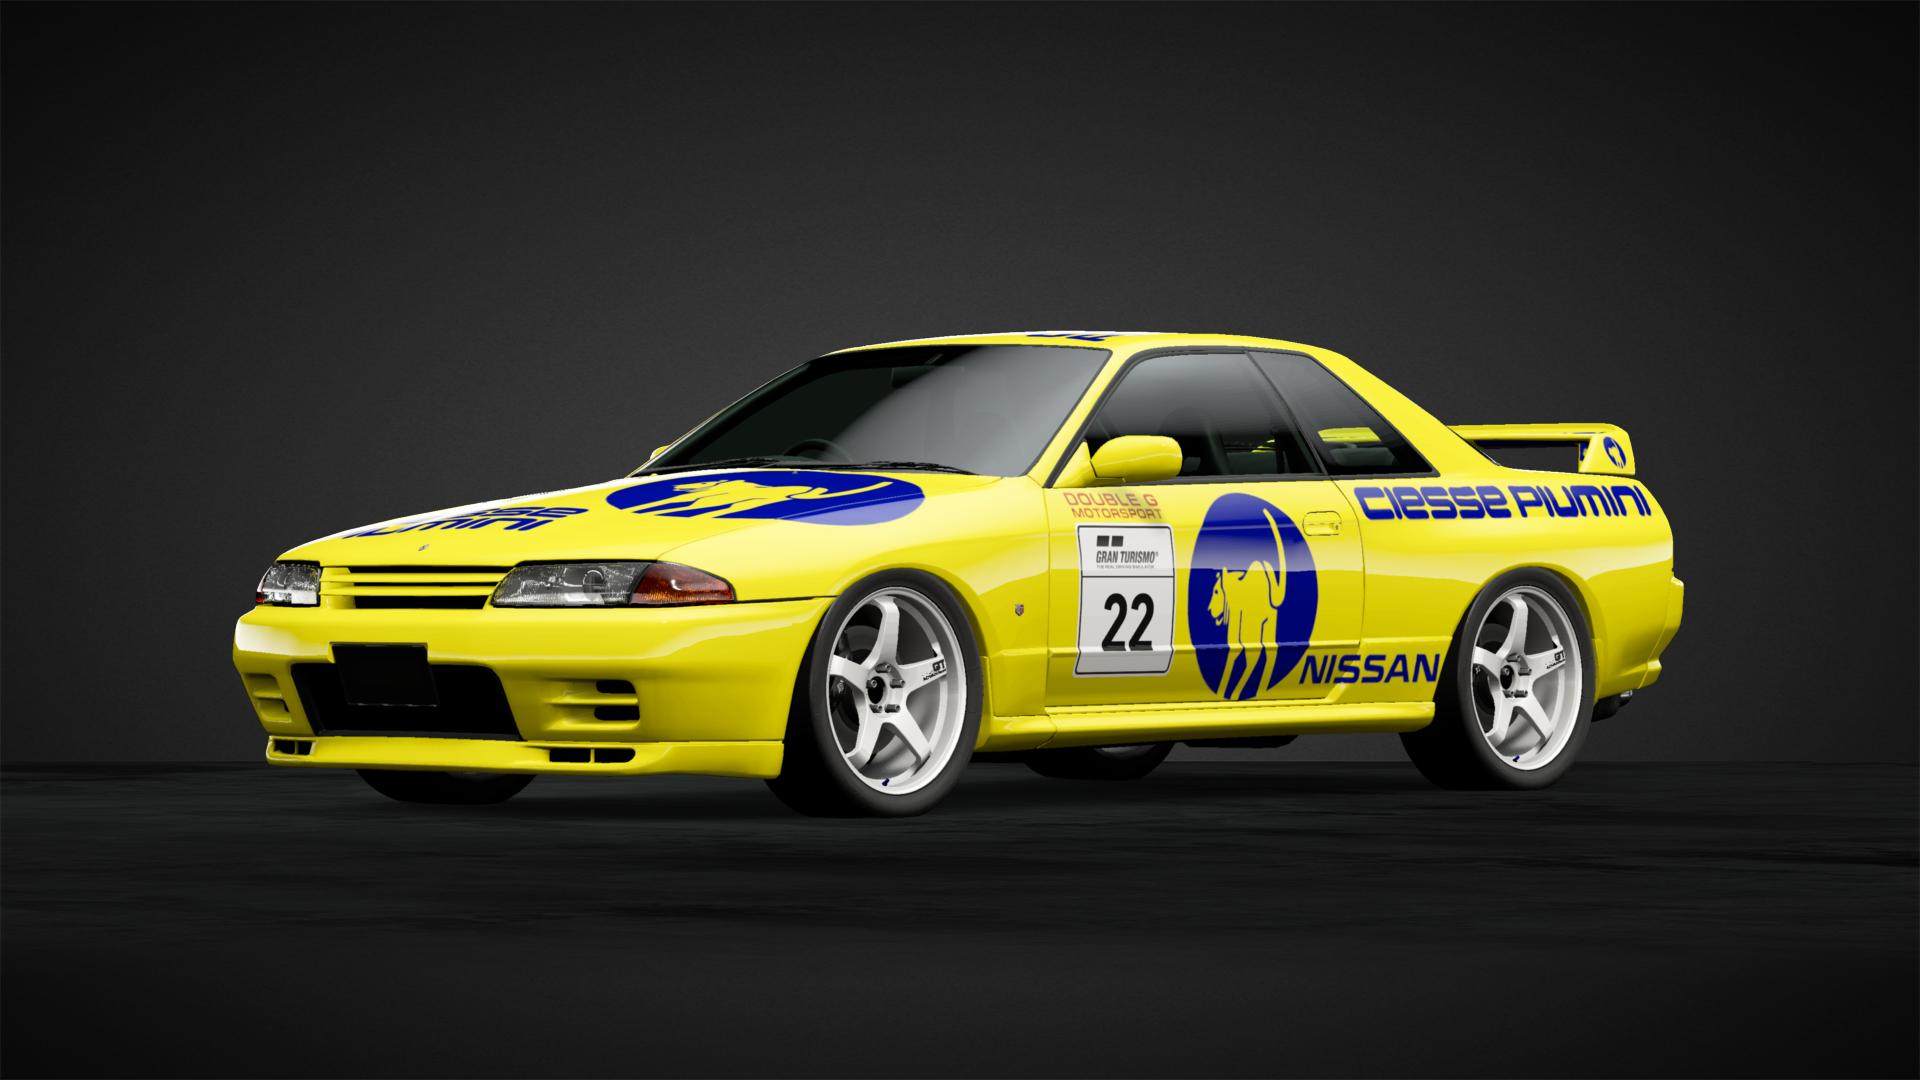 sports shoes 328ab e6c41 Ciesse Piumini Skyline - Yellow - Car Livery by doubleg213 ...